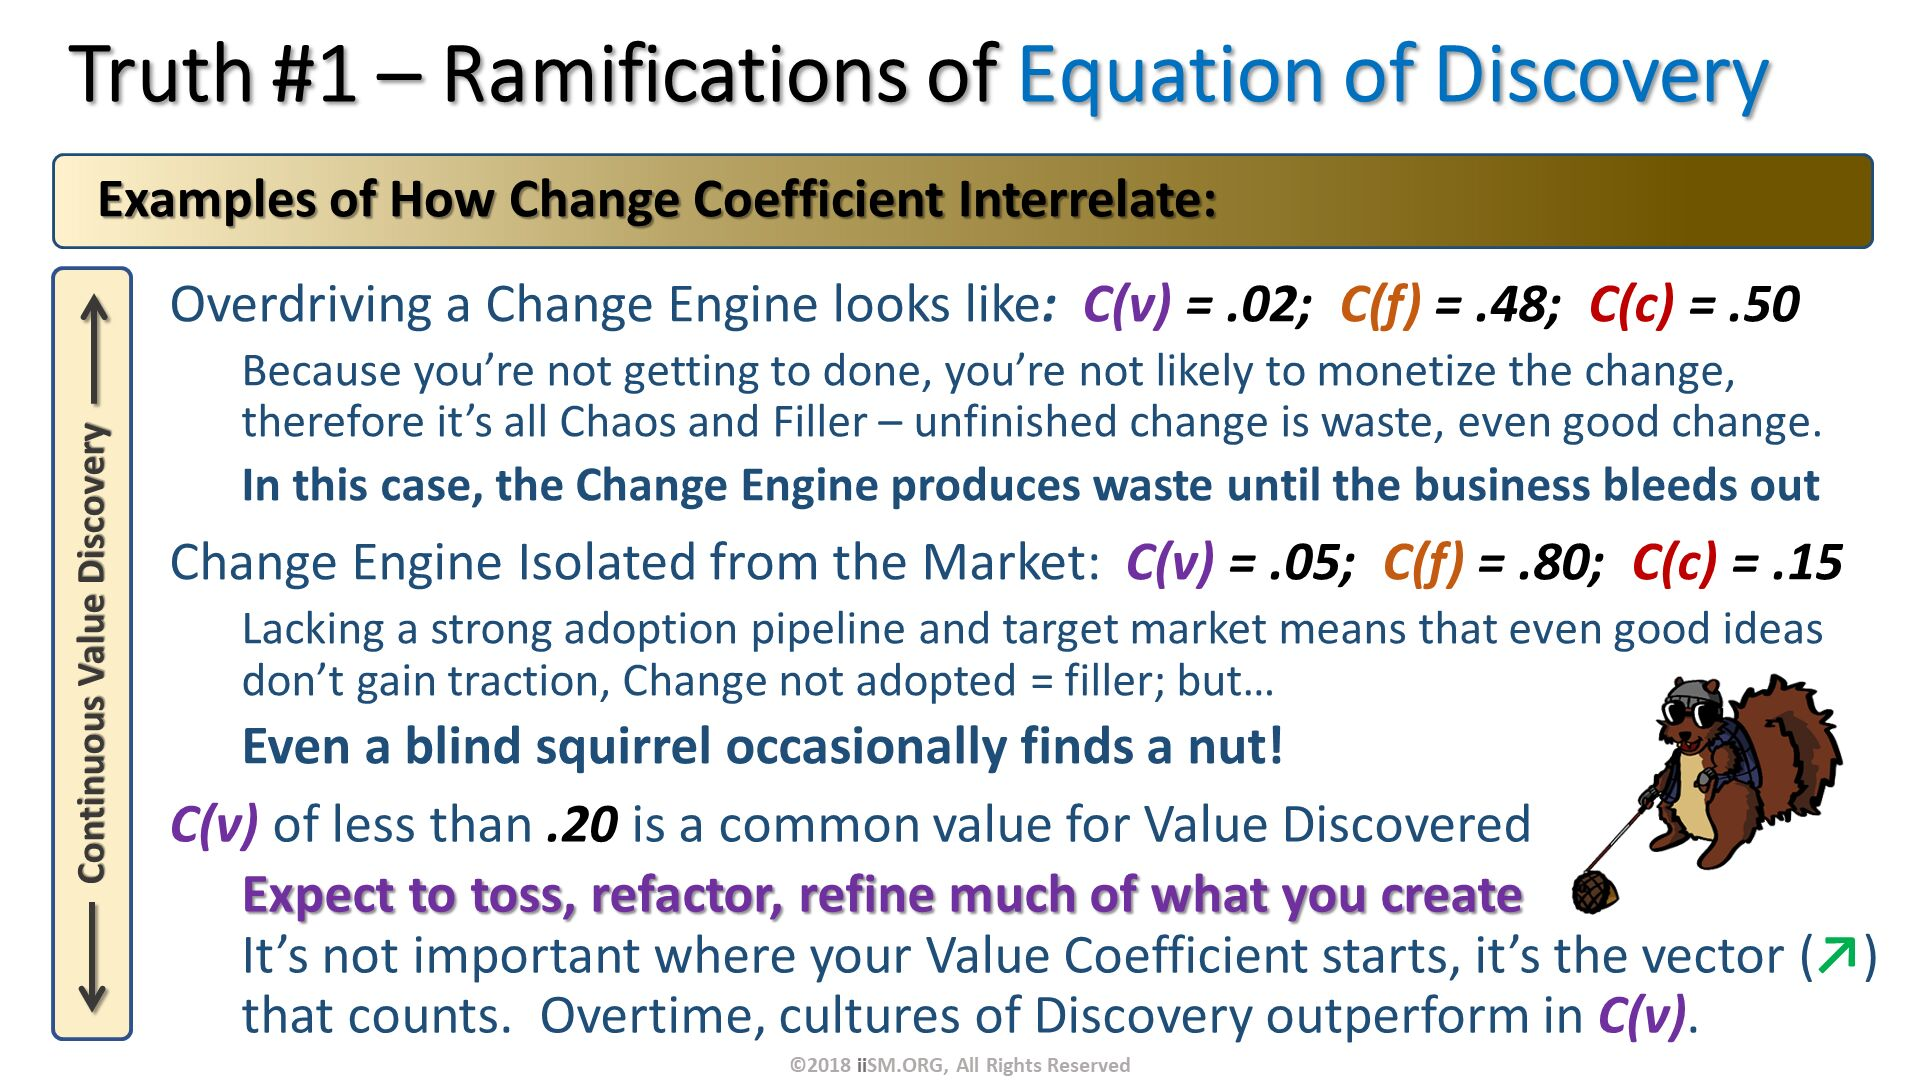 Truth #1 – Ramifications of Equation of Discovery. Overdriving a Change Engine looks like:  C(v) = .02;  C(f) = .48;  C(c) = .50 Because you're not getting to done, you're not likely to monetize the change, therefore it's all Chaos and Filler – unfinished change is waste, even good change. In this case, the Change Engine produces waste until the business bleeds out Change Engine Isolated from the Market:  C(v) = .05;  C(f) = .80;  C(c) = .15 Lacking a strong adoption pipeline and target market means that even good ideas don't gain traction, Change not adopted = filler; but…  Even a blind squirrel occasionally finds a nut!.   Examples of How Change Coefficient Interrelate:. C(v) of less than .20 is a common value for Value Discovered Expect to toss, refactor, refine much of what you createIt's not important where your Value Coefficient starts, it's the vector (↗) that counts.  Overtime, cultures of Discovery outperform in C(v). . ©2018 iiSM.ORG, All Rights Reserved.